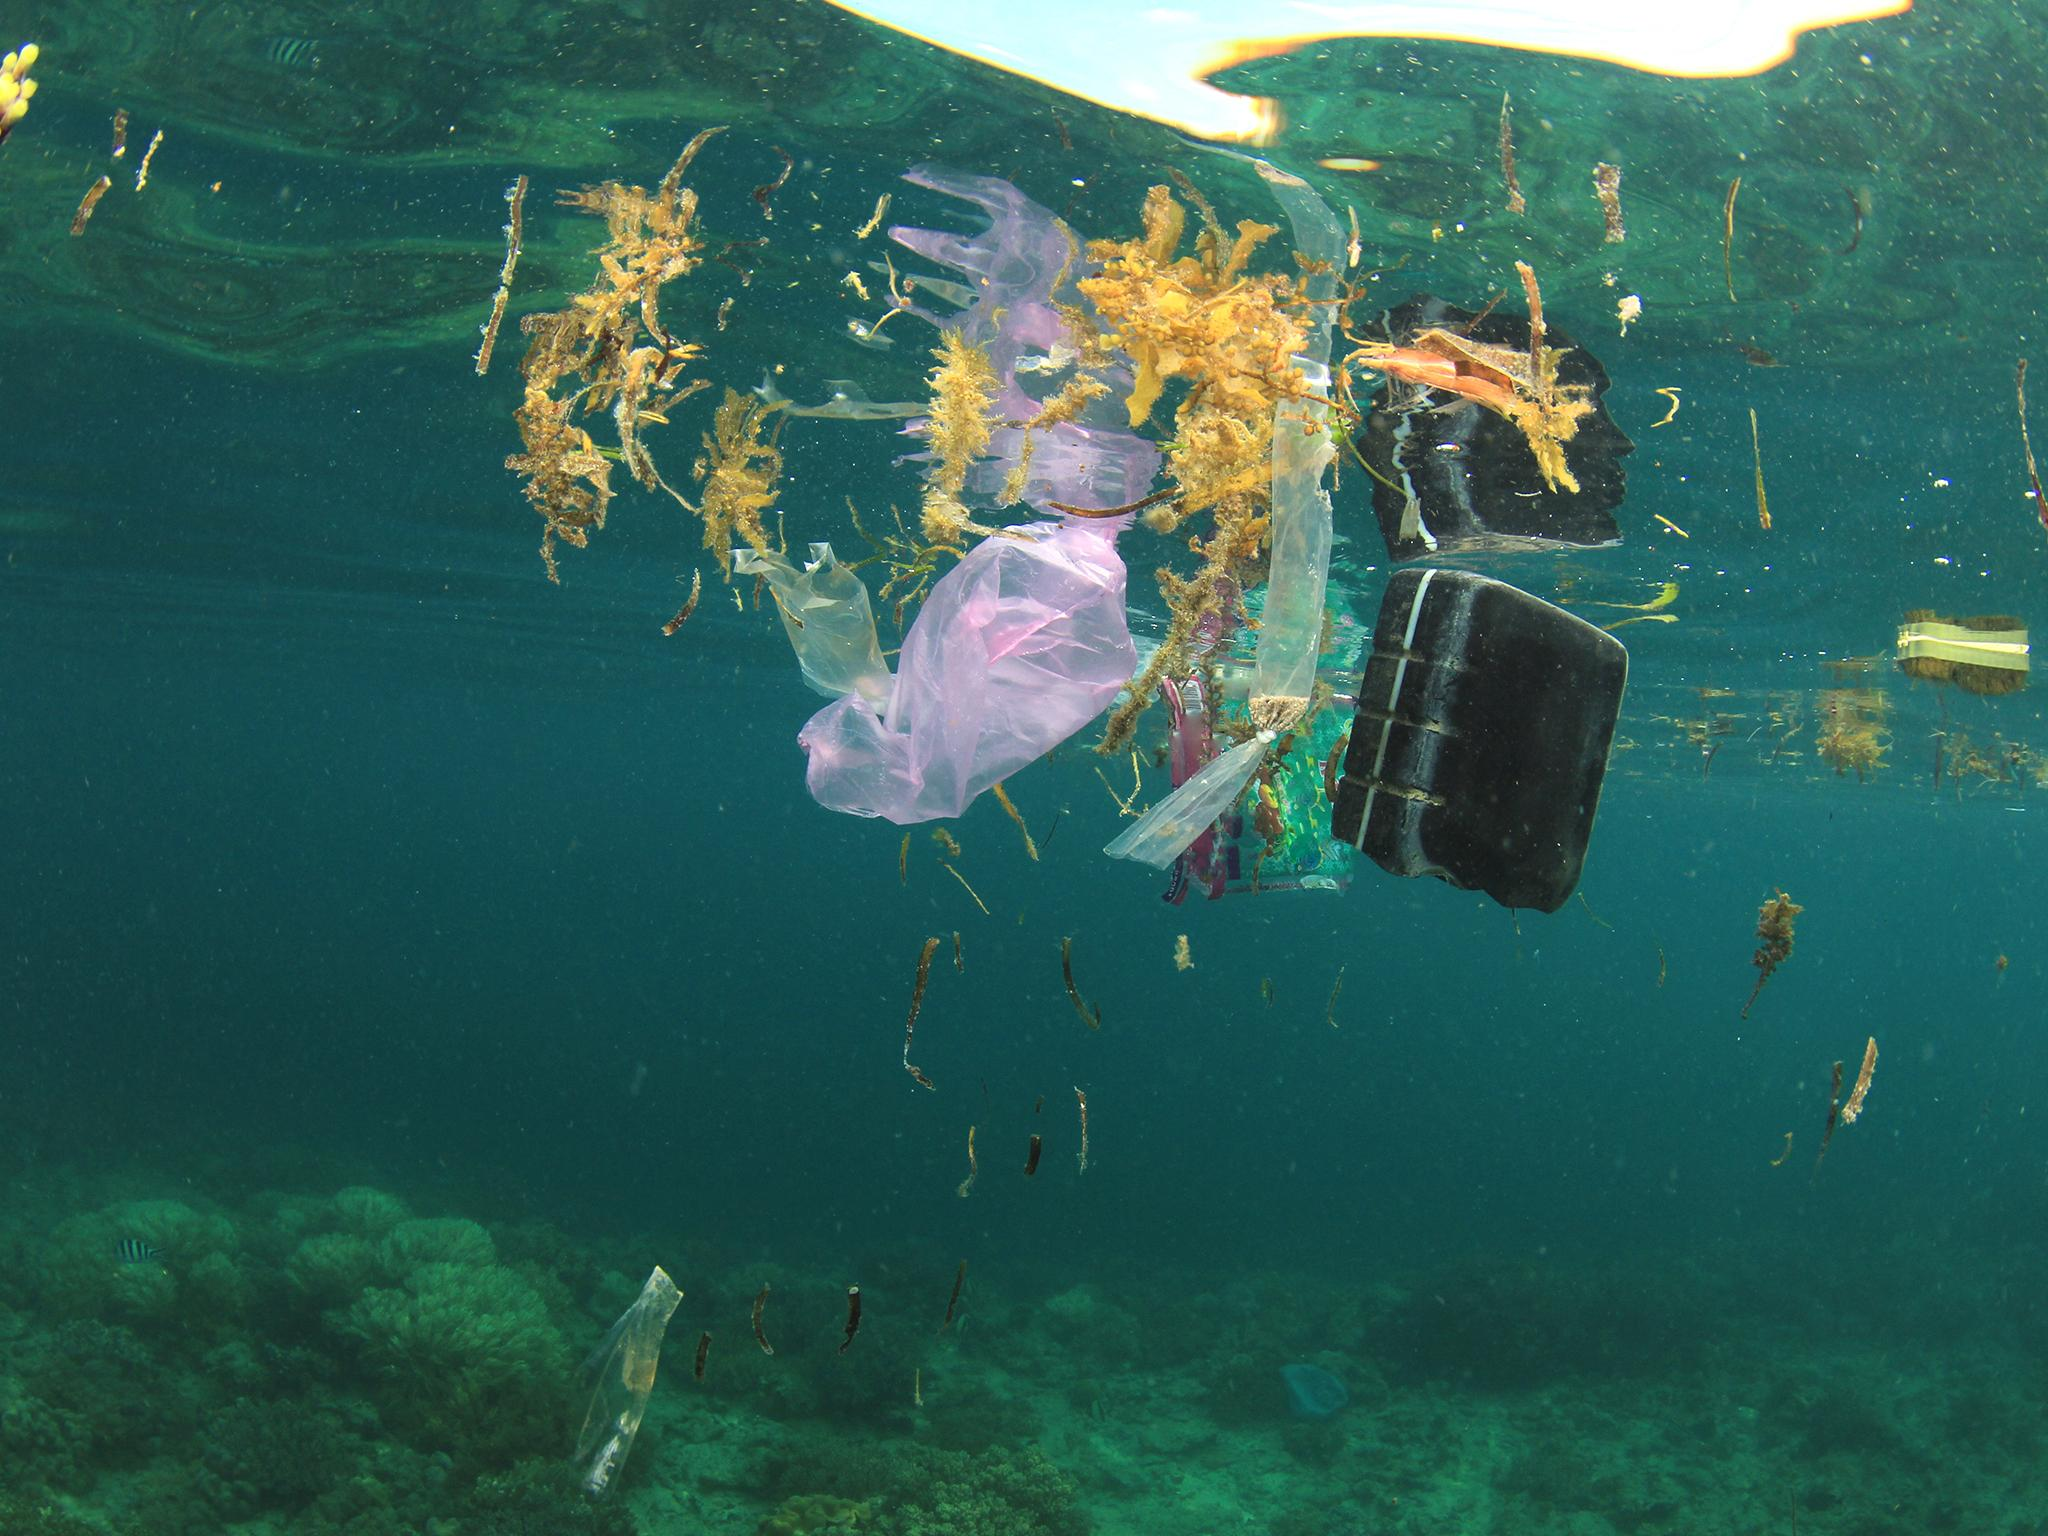 Why We Need To Recycle Plastic And Not Add The Eight Million When Was Aluminum Wiring Banned In Ontario Tonnes Of Rubbish Our Oceans Independent